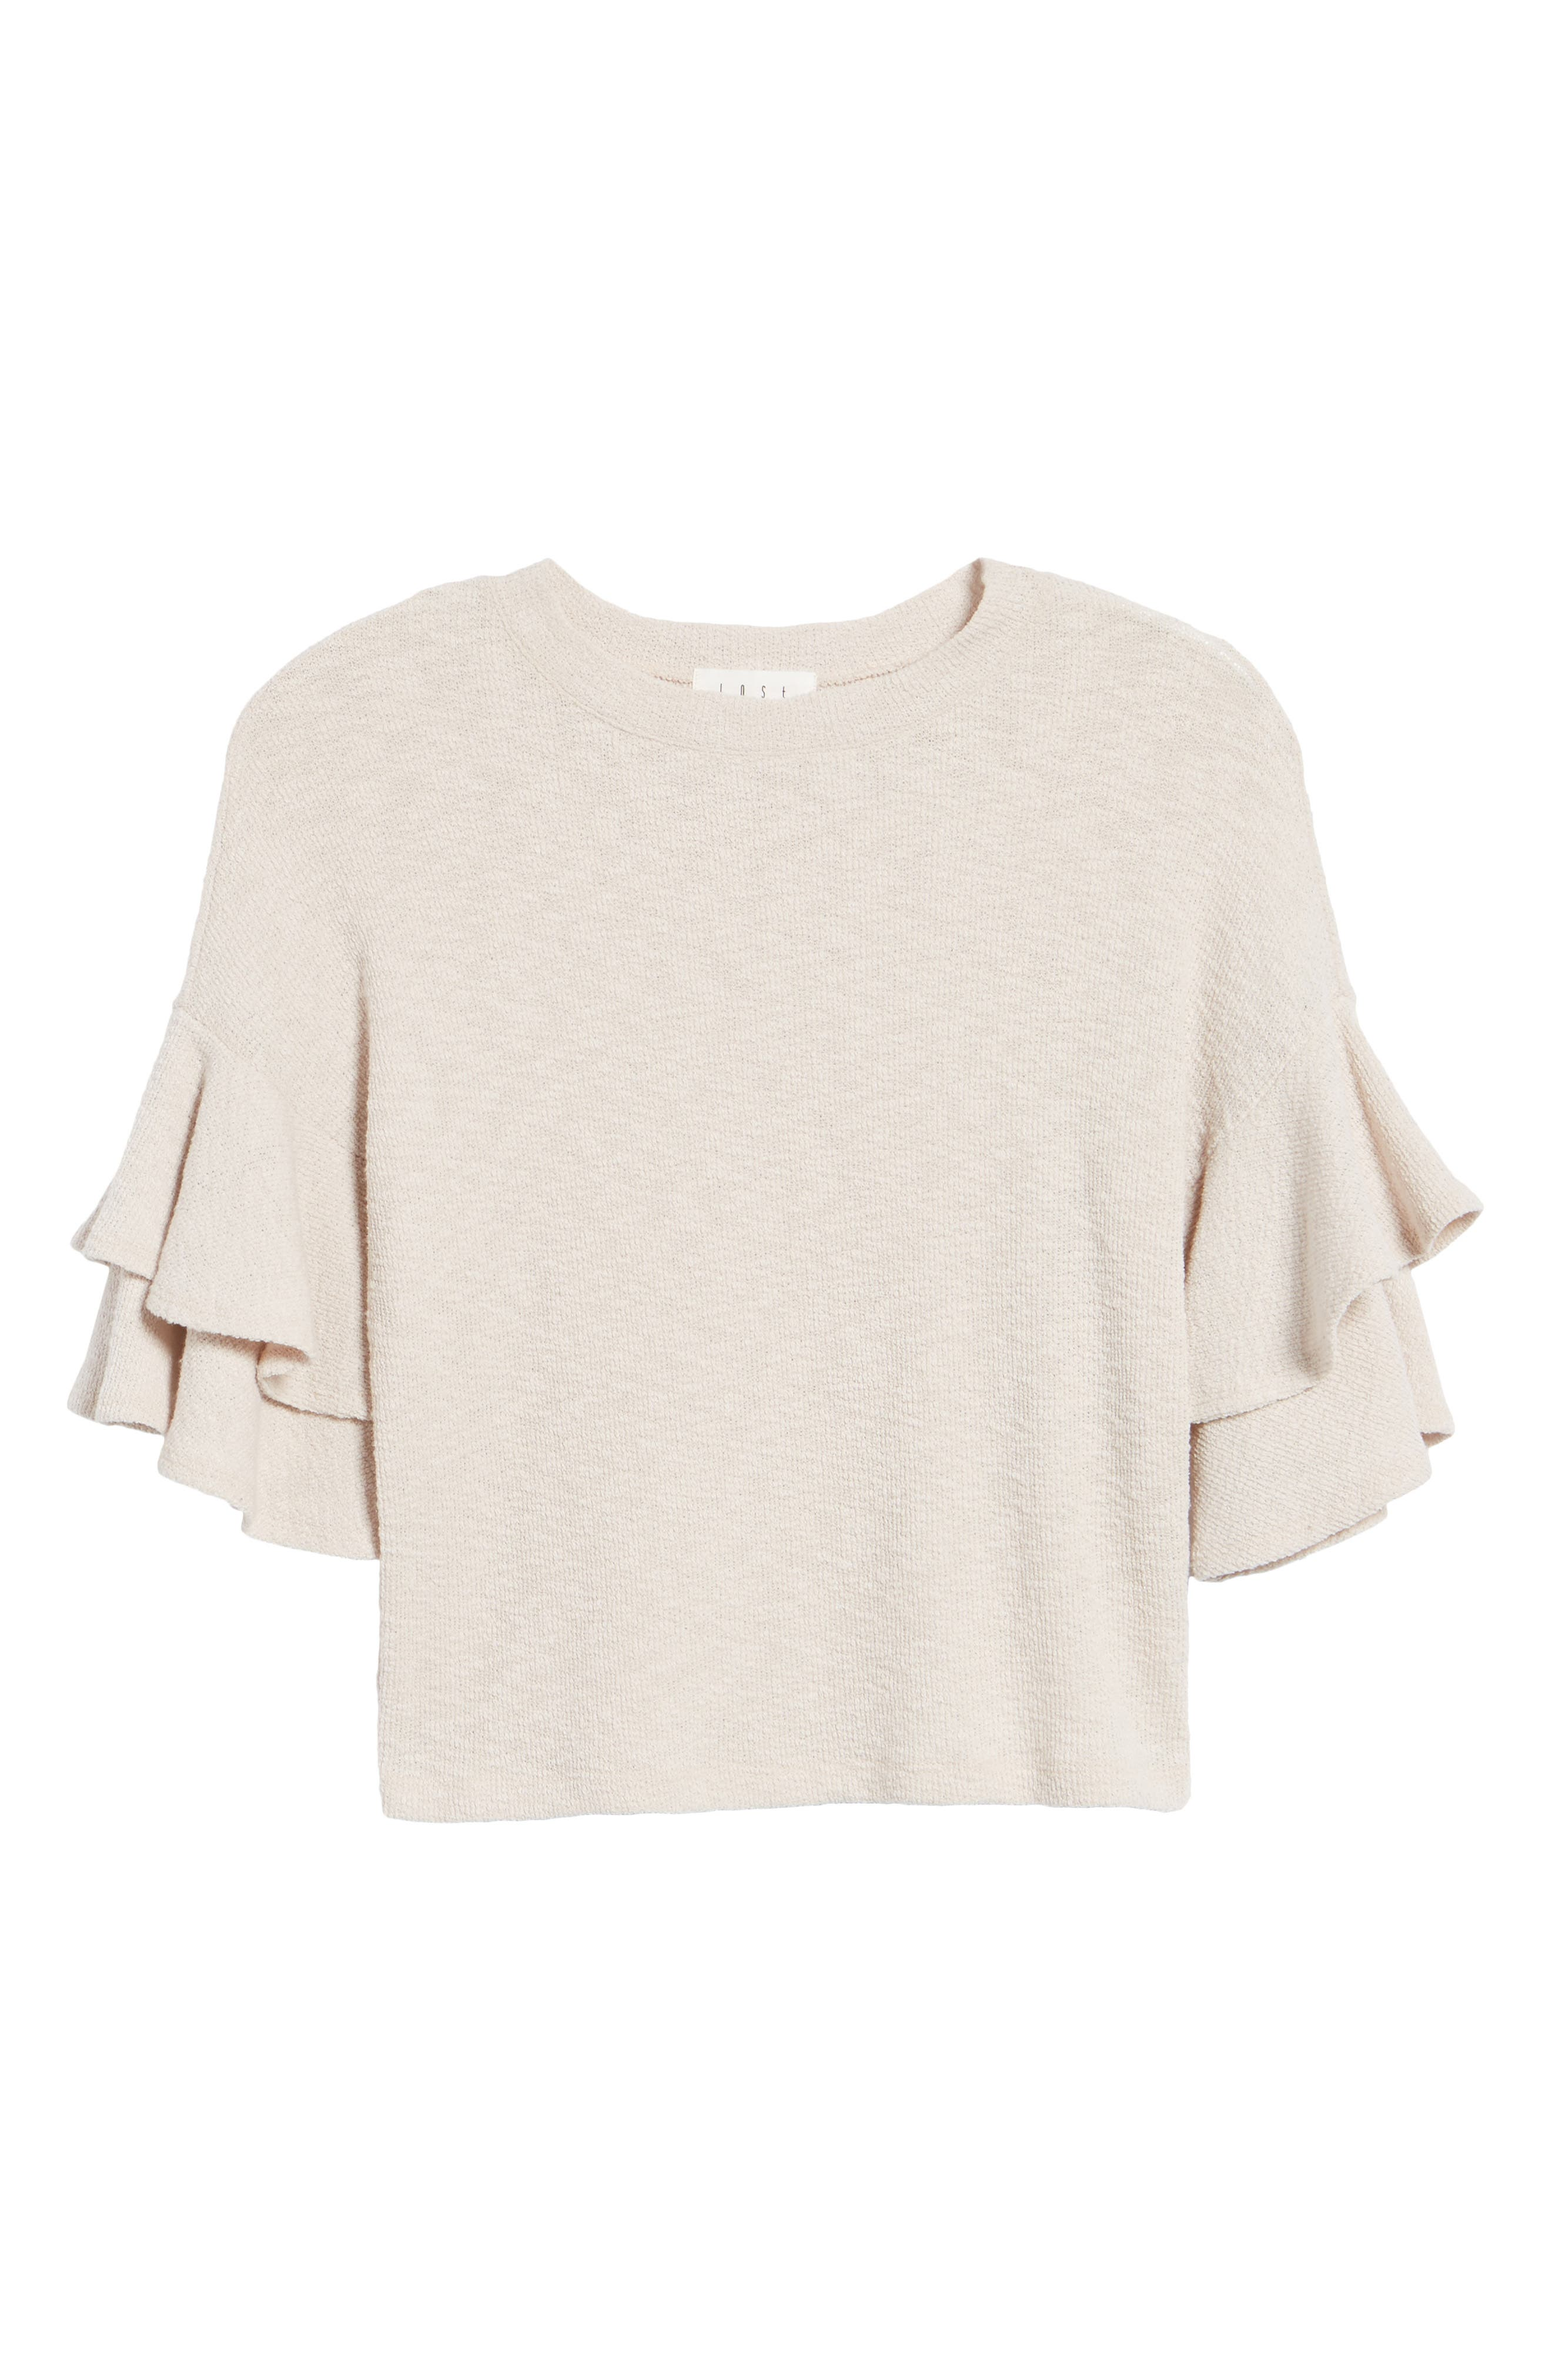 Cherry Blossom Ruffle Sleeve Top,                             Alternate thumbnail 7, color,                             Pale Pink